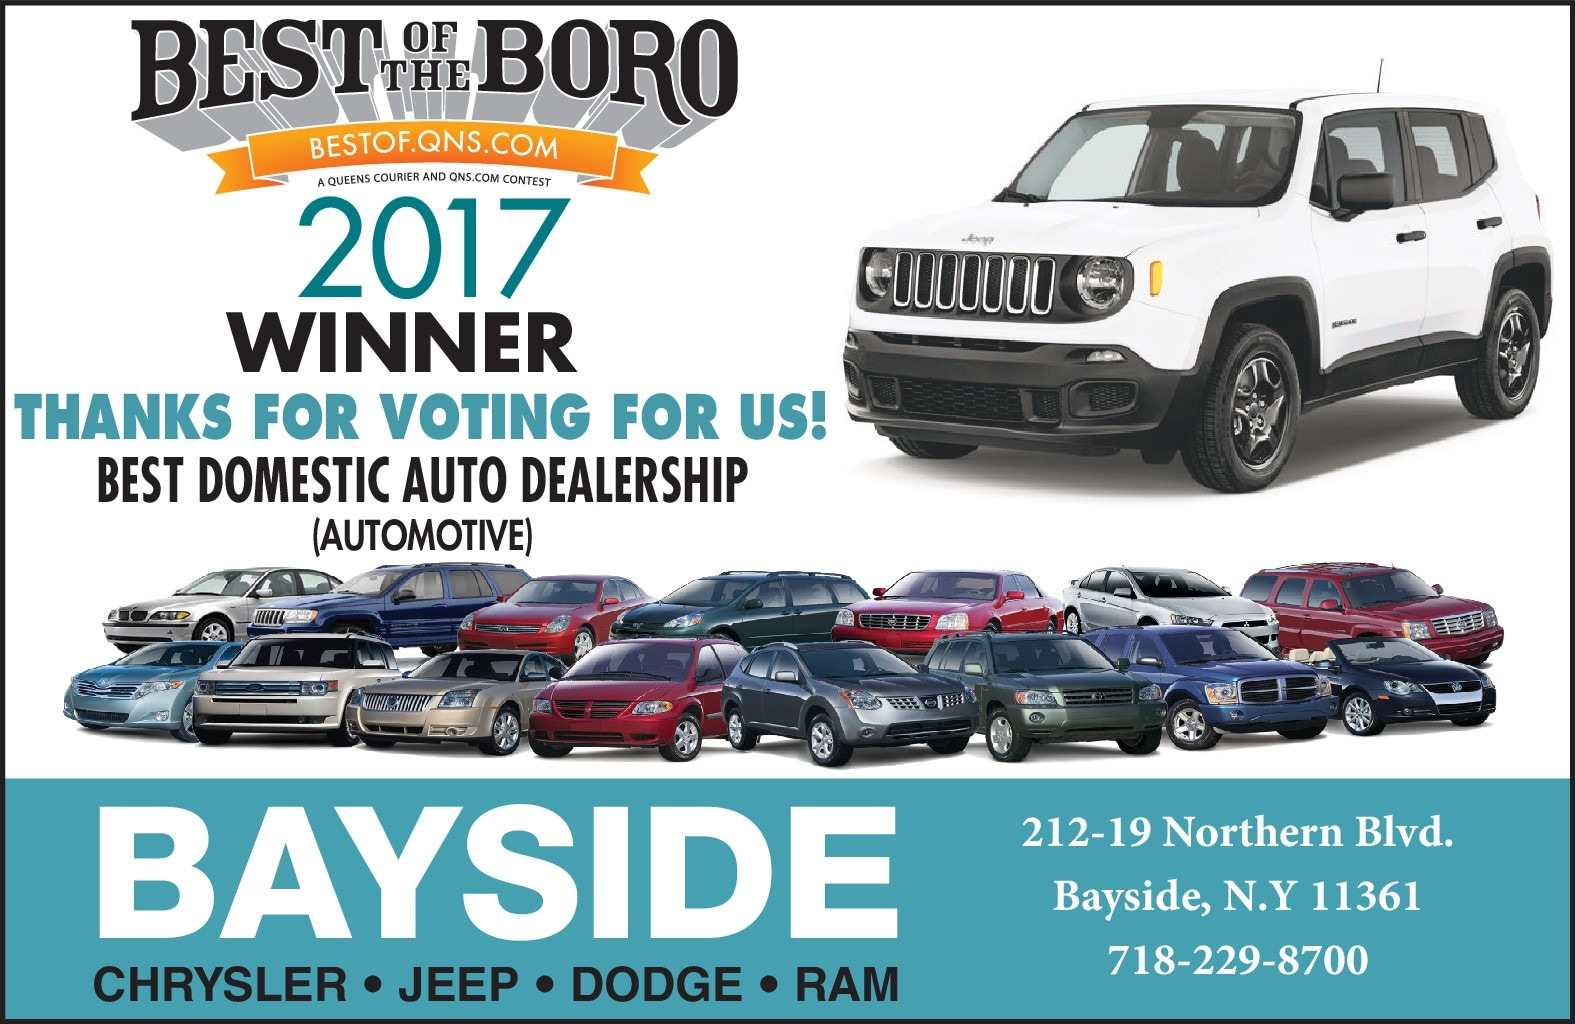 Bayside Chrysler Jeep Dodge Has Been Voted The Best Domestic Auto  Dealership By The Readership Of The Website Best Of Queens In Their ...